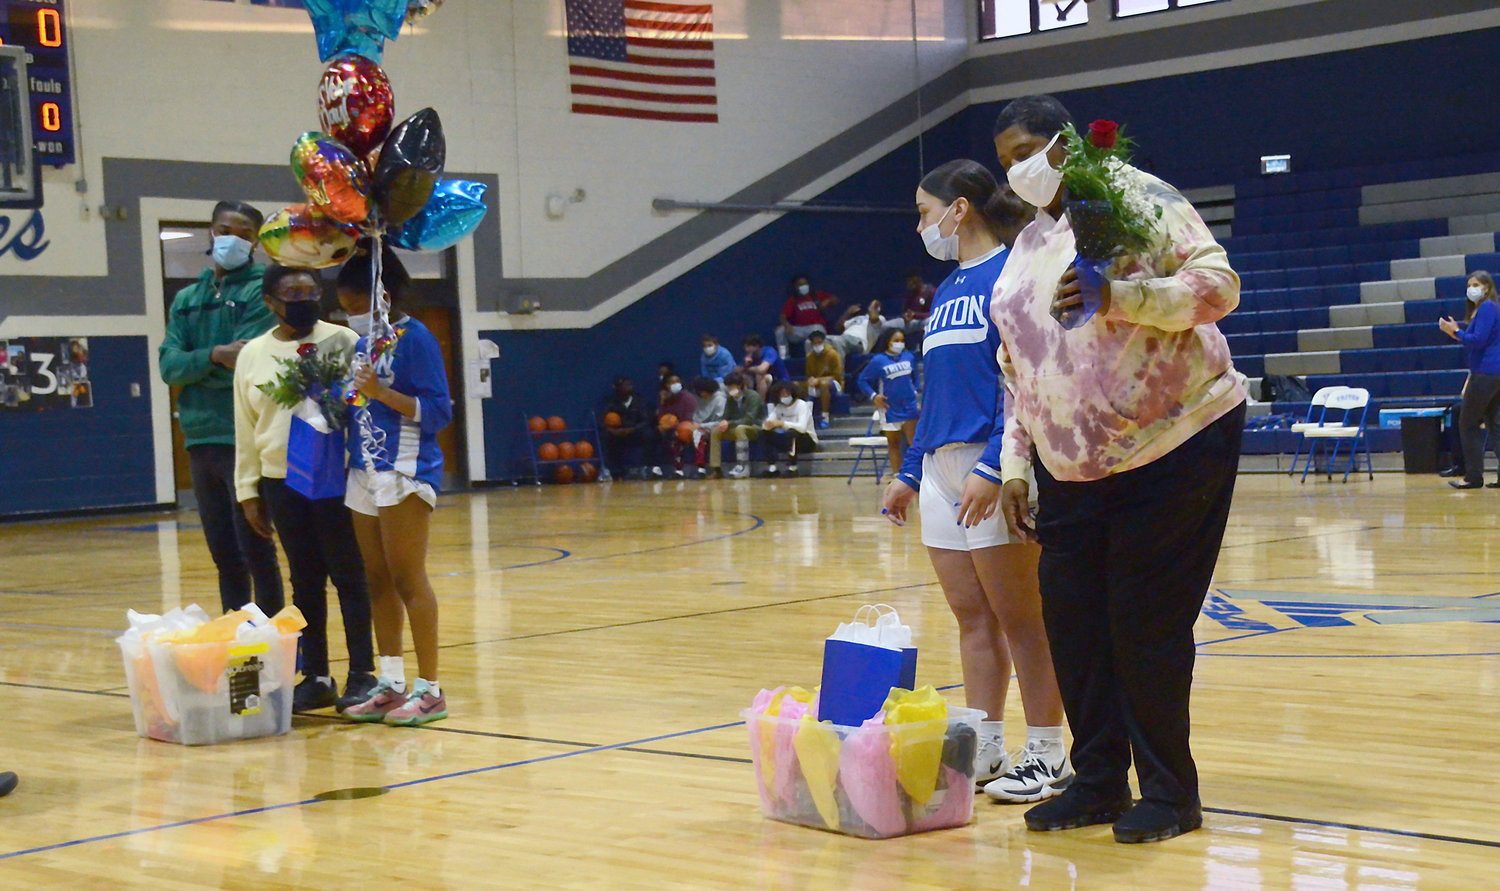 Triton girls basketball players Anastasia McDonald, left, and Kaila Cooney, right, are joined by family members during Tuesday's Senior Night ceremony. Six seniors from the boys' basketball team were also honored.